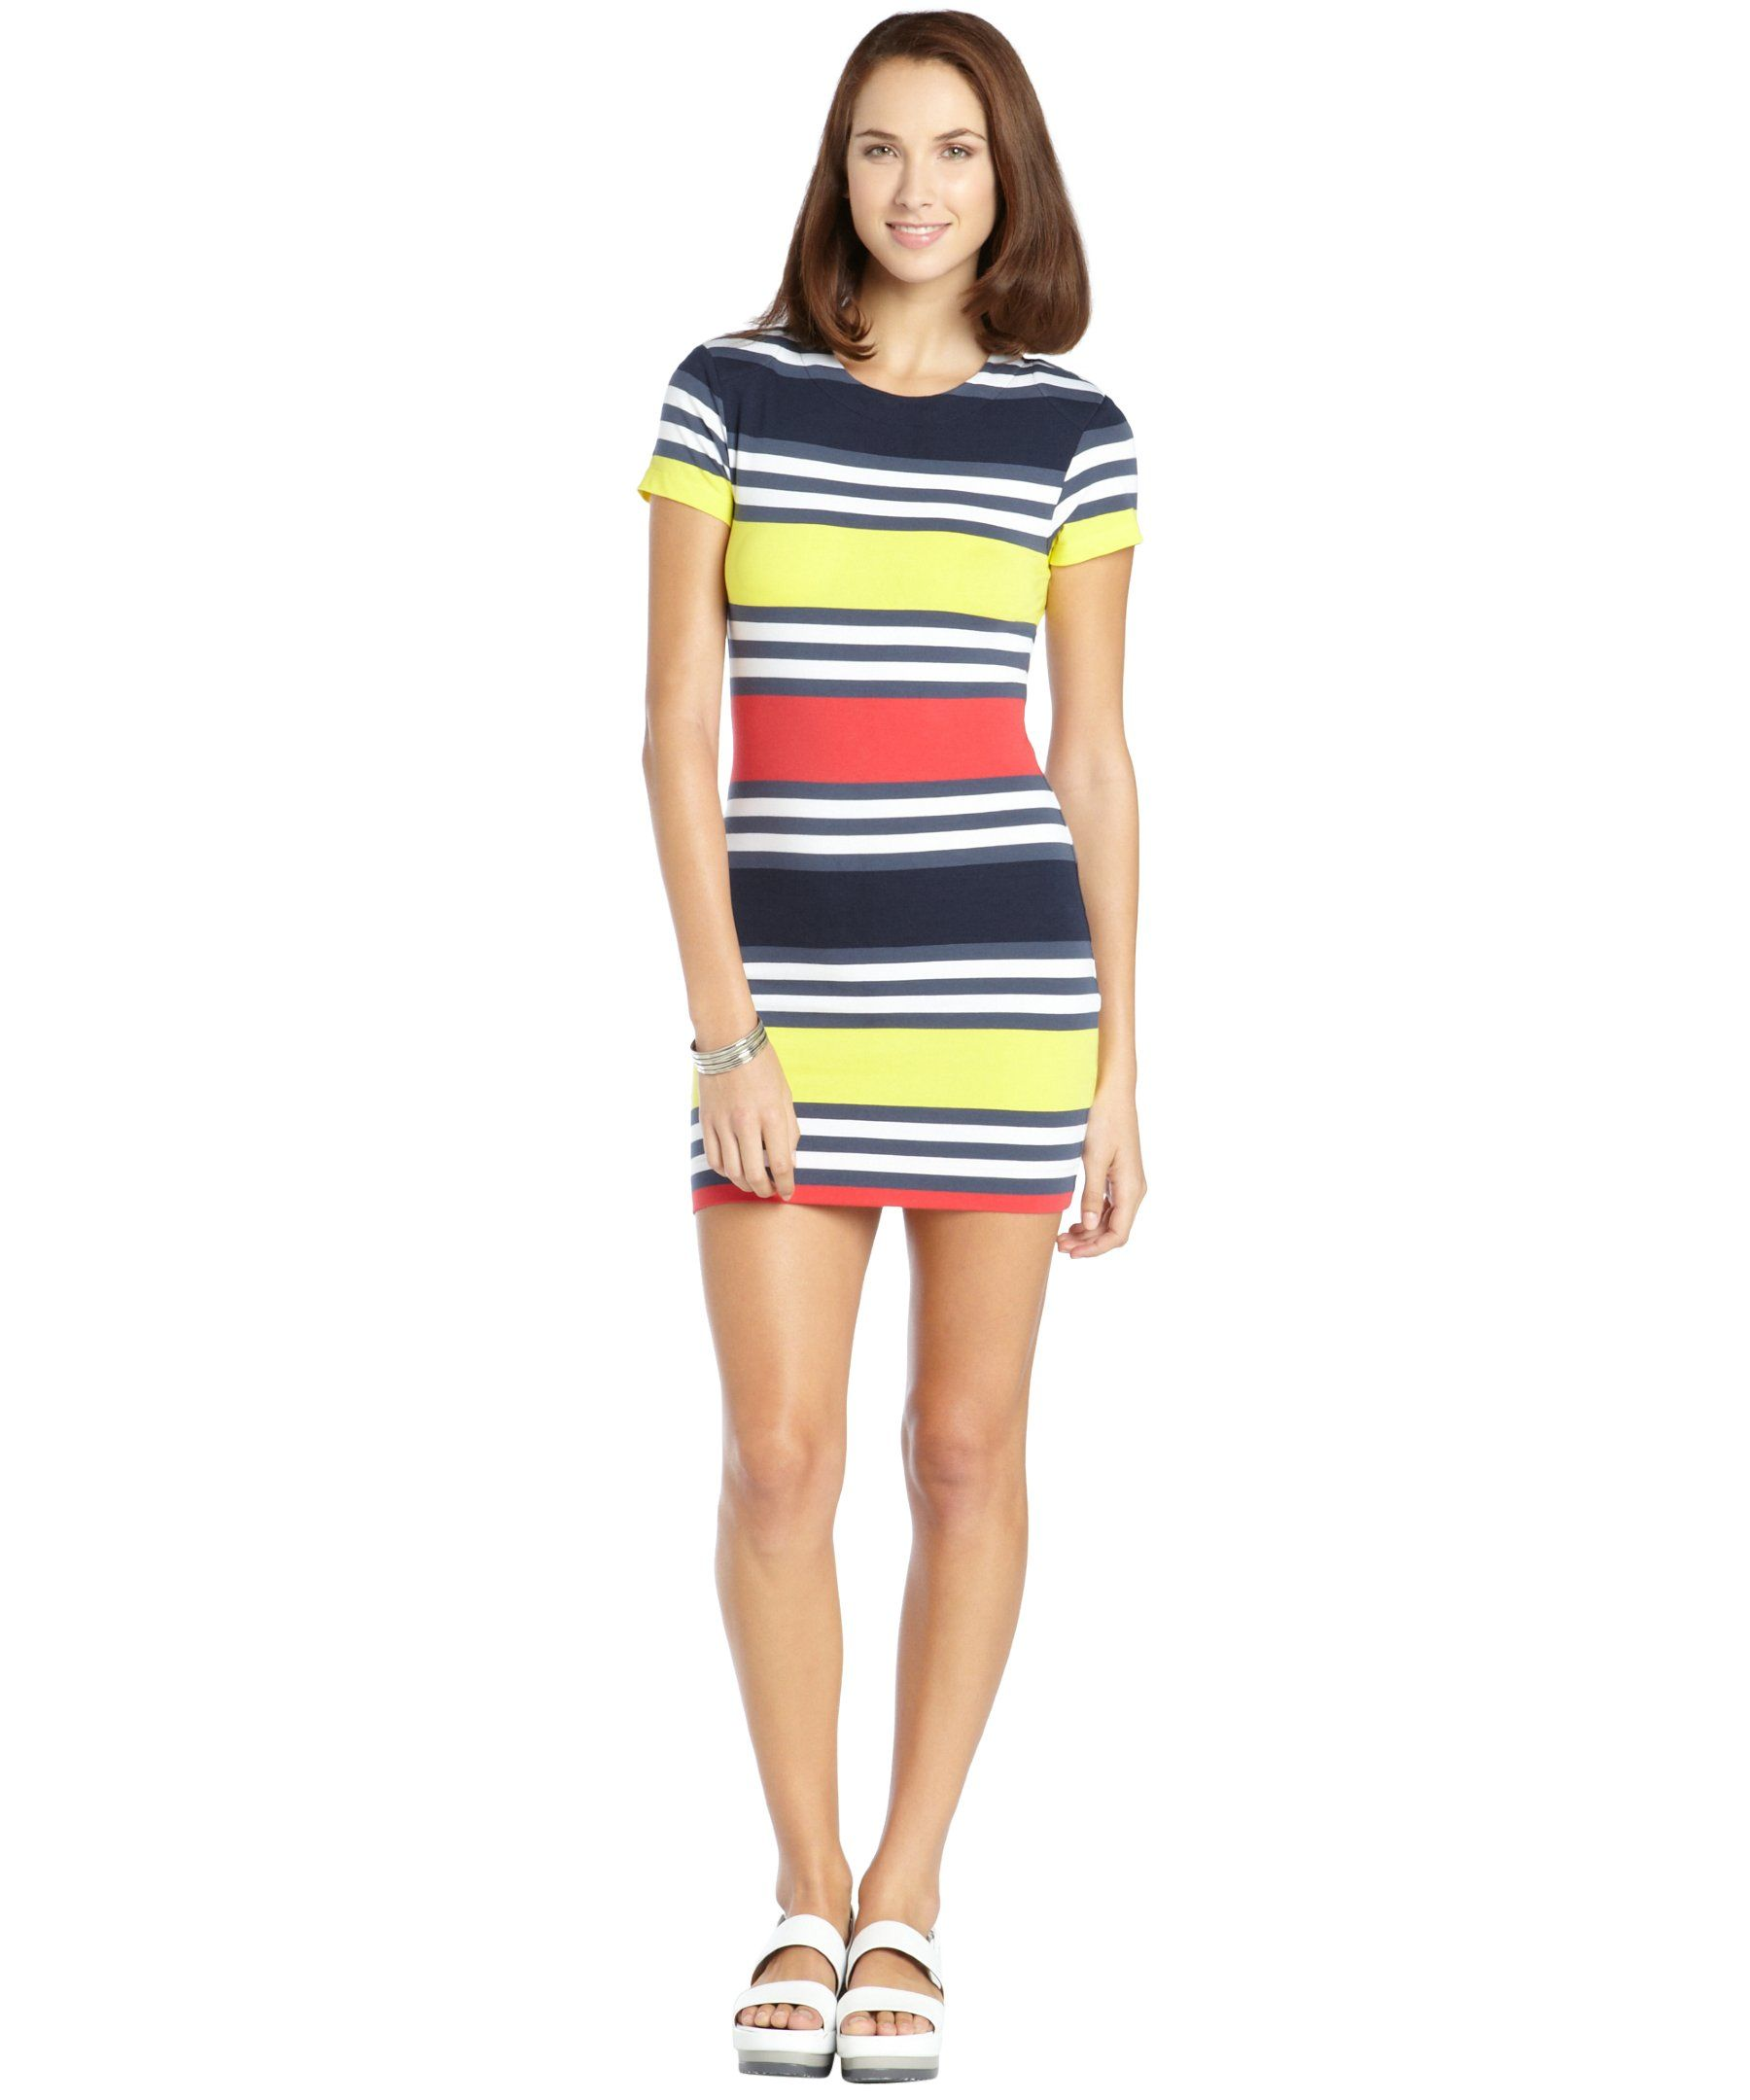 French Connection blue and yellow stretch cotton jag stripe dress | BLUEFLY up to 70% off designer brands